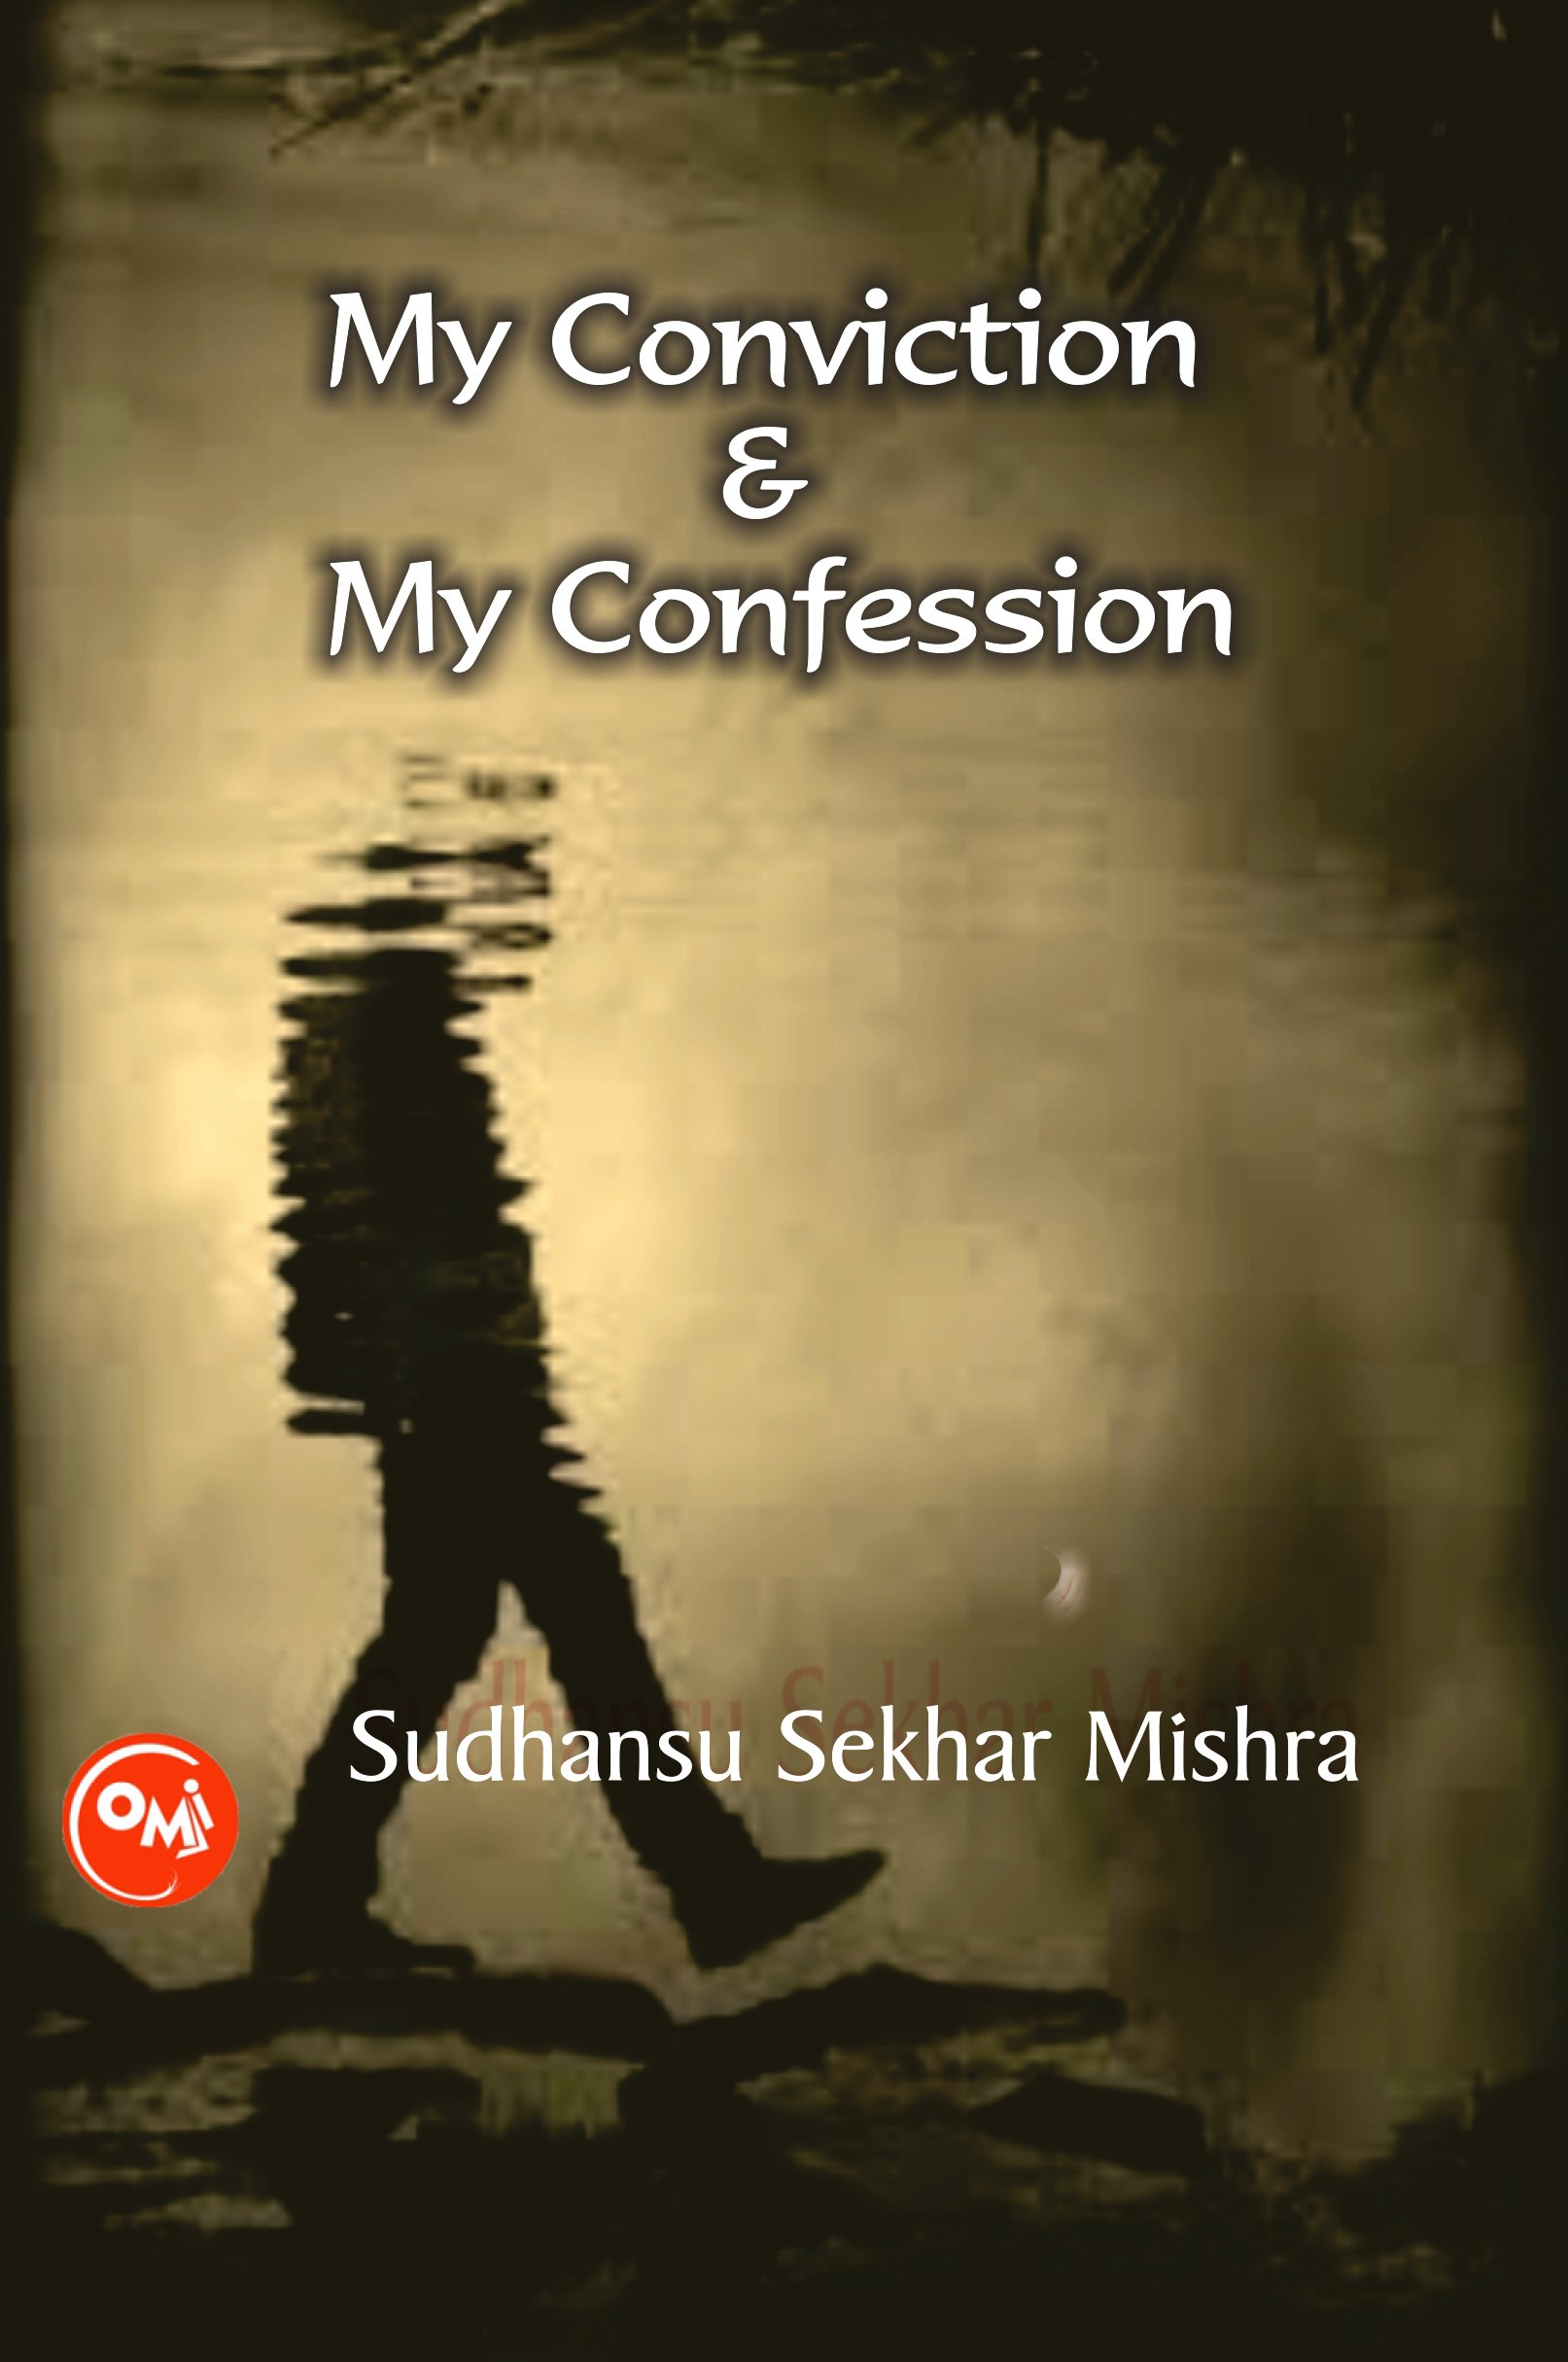 Buy My Conviction and My Confession Book Online at Low Prices in India | My  Conviction and My Confession Reviews & Ratings - Amazon.in